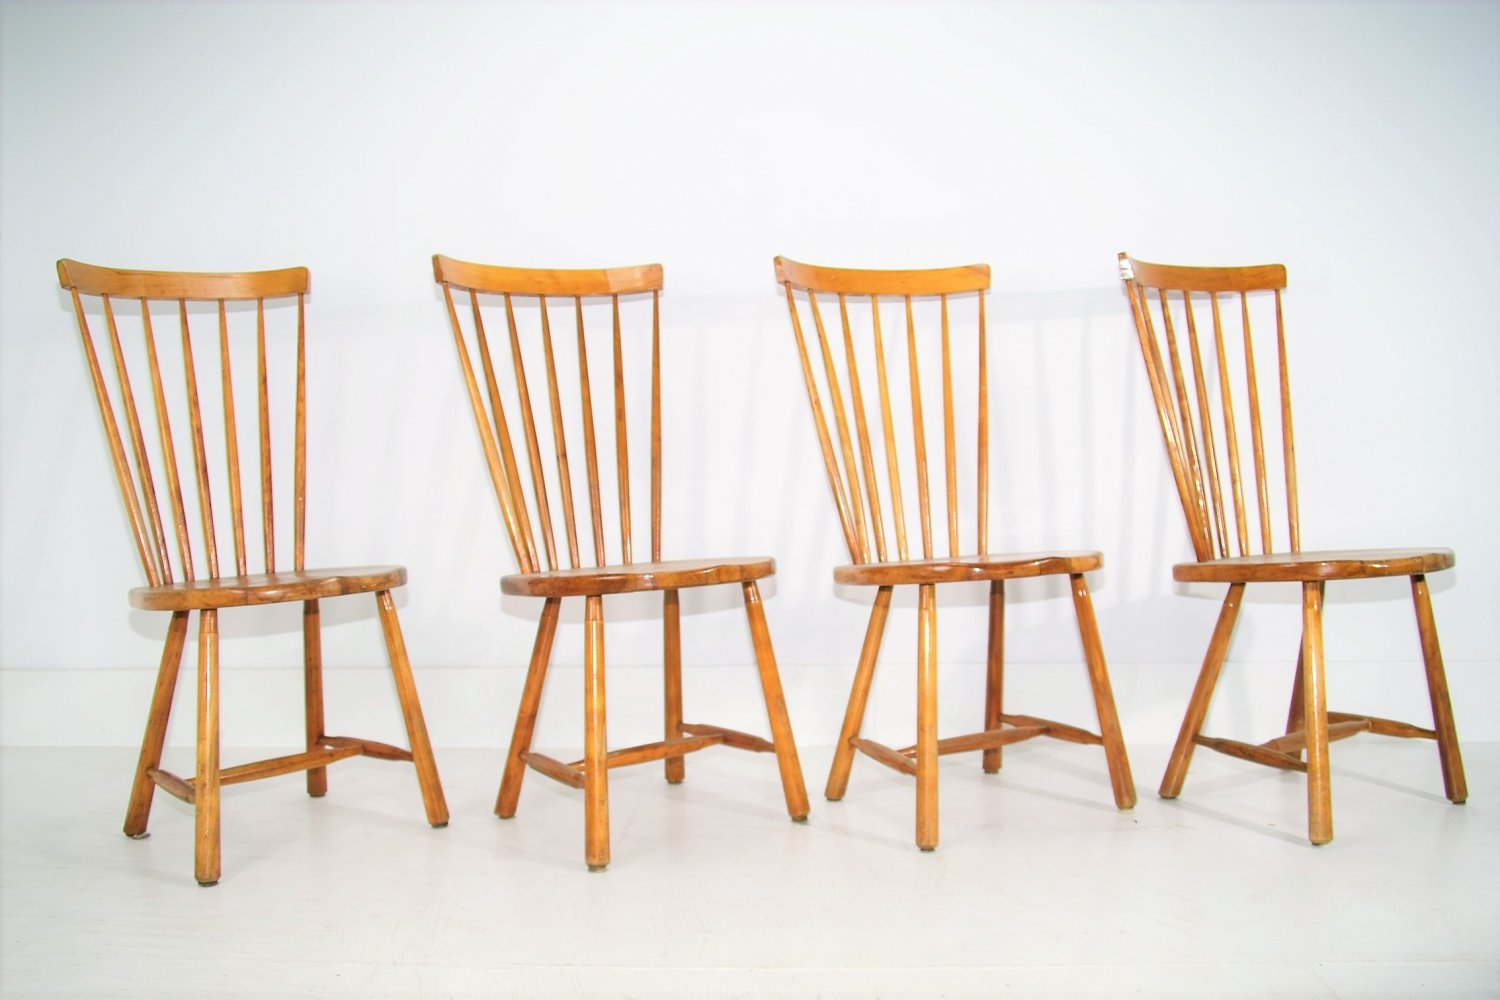 Set of 4 Windsor Pinewood Dining Chairs, 1960s